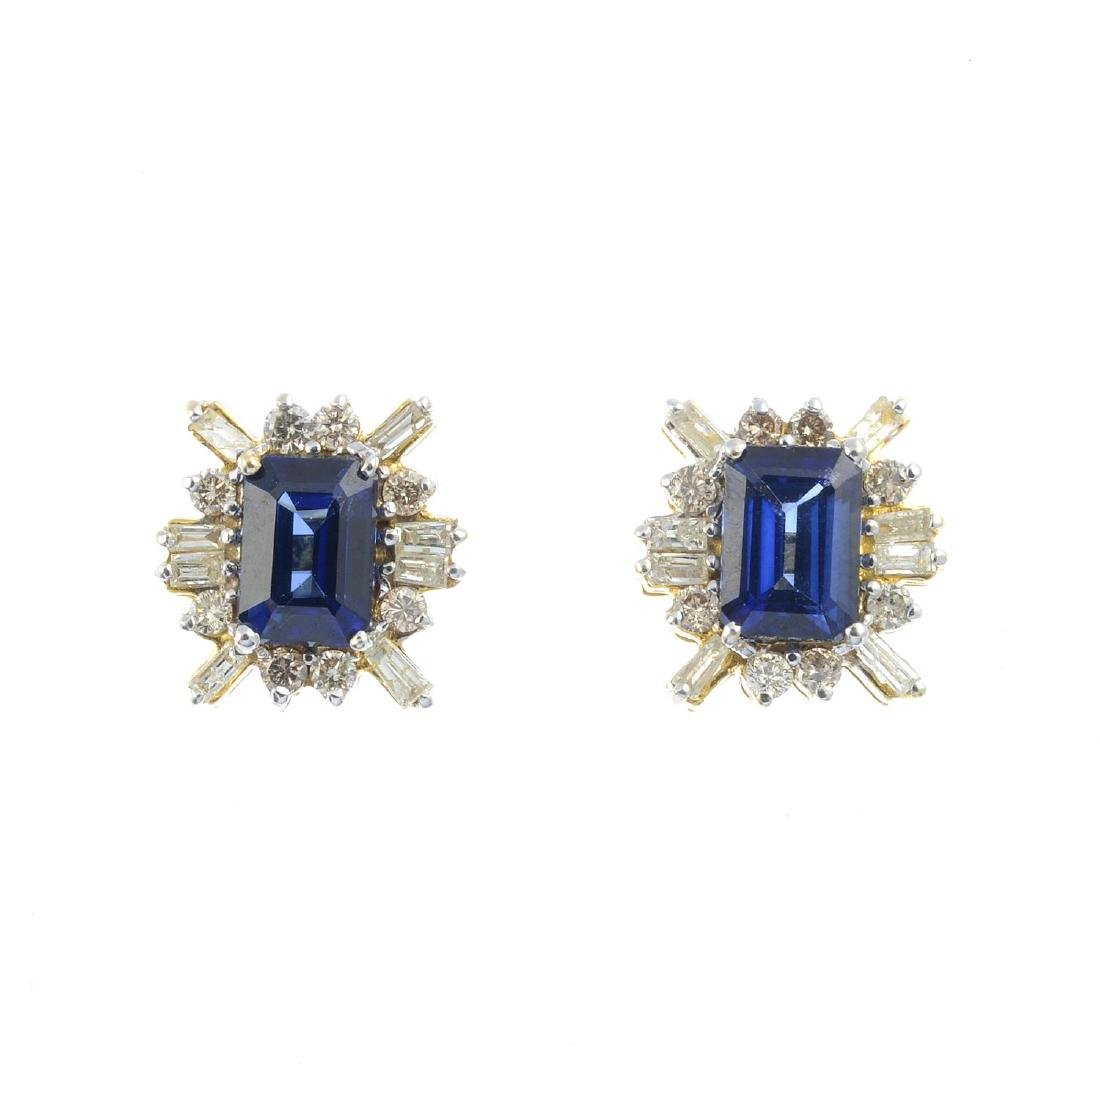 A pair of sapphire and diamond stud earrings. Each